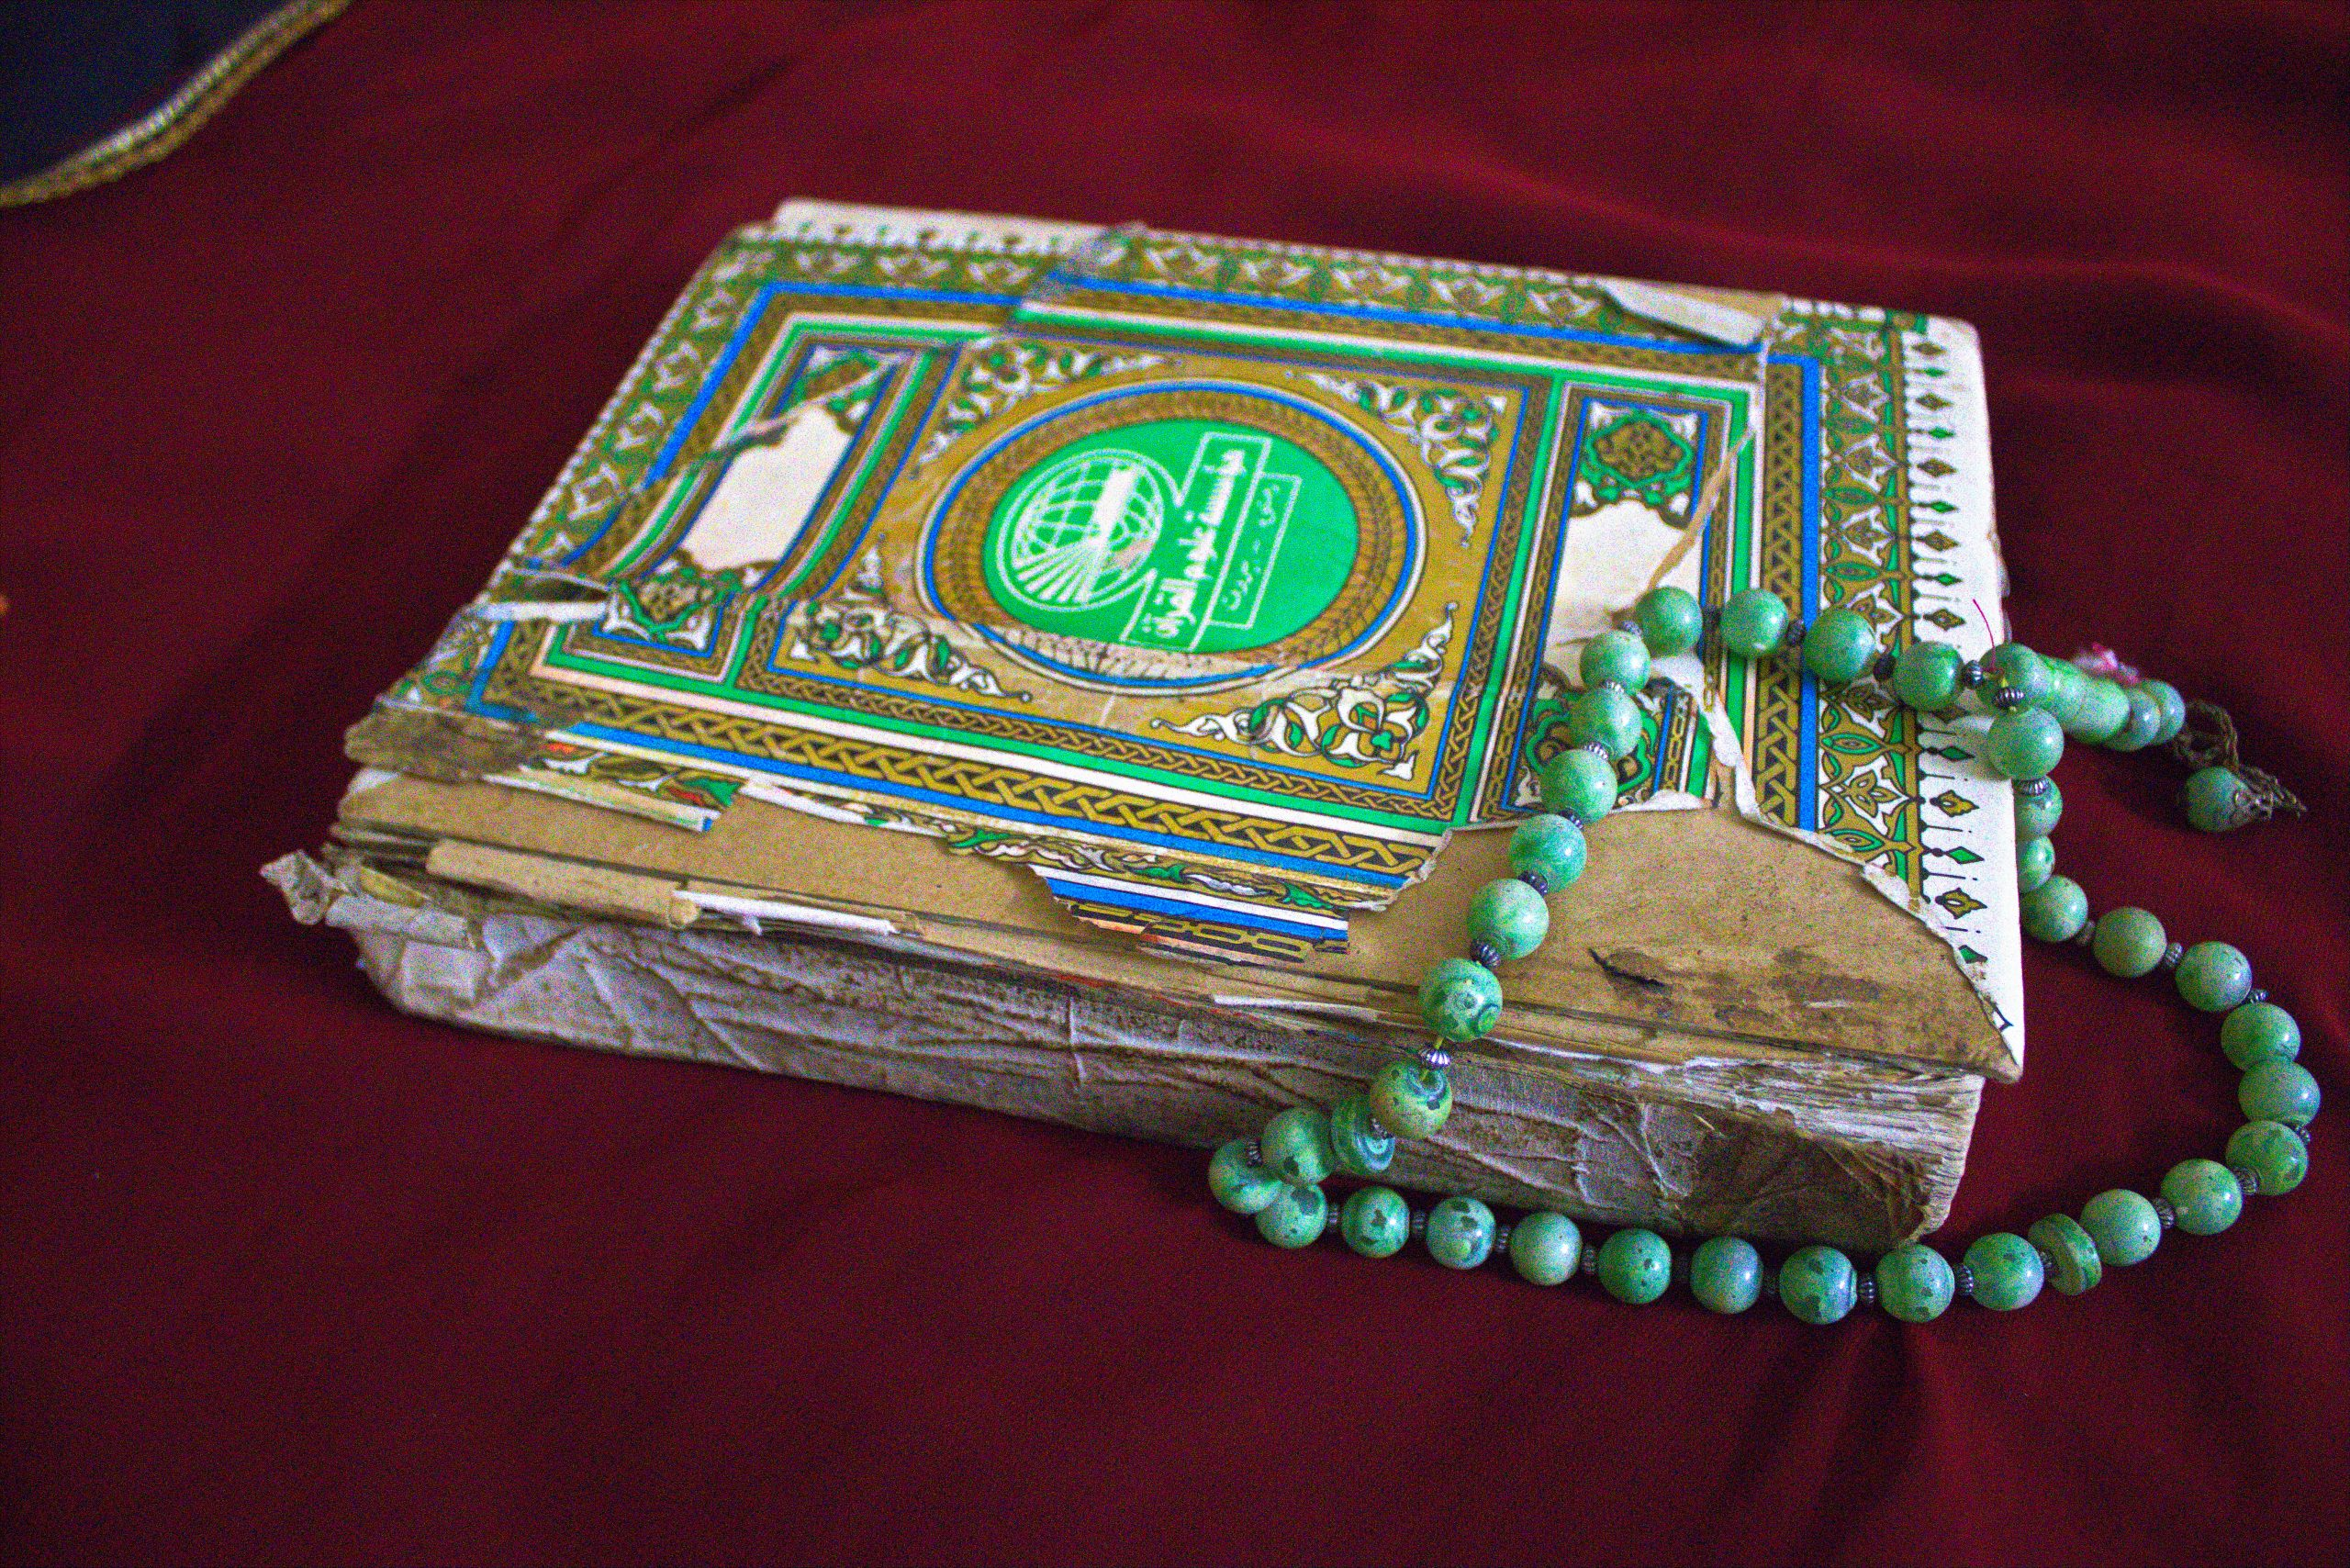 The Holy Quran.